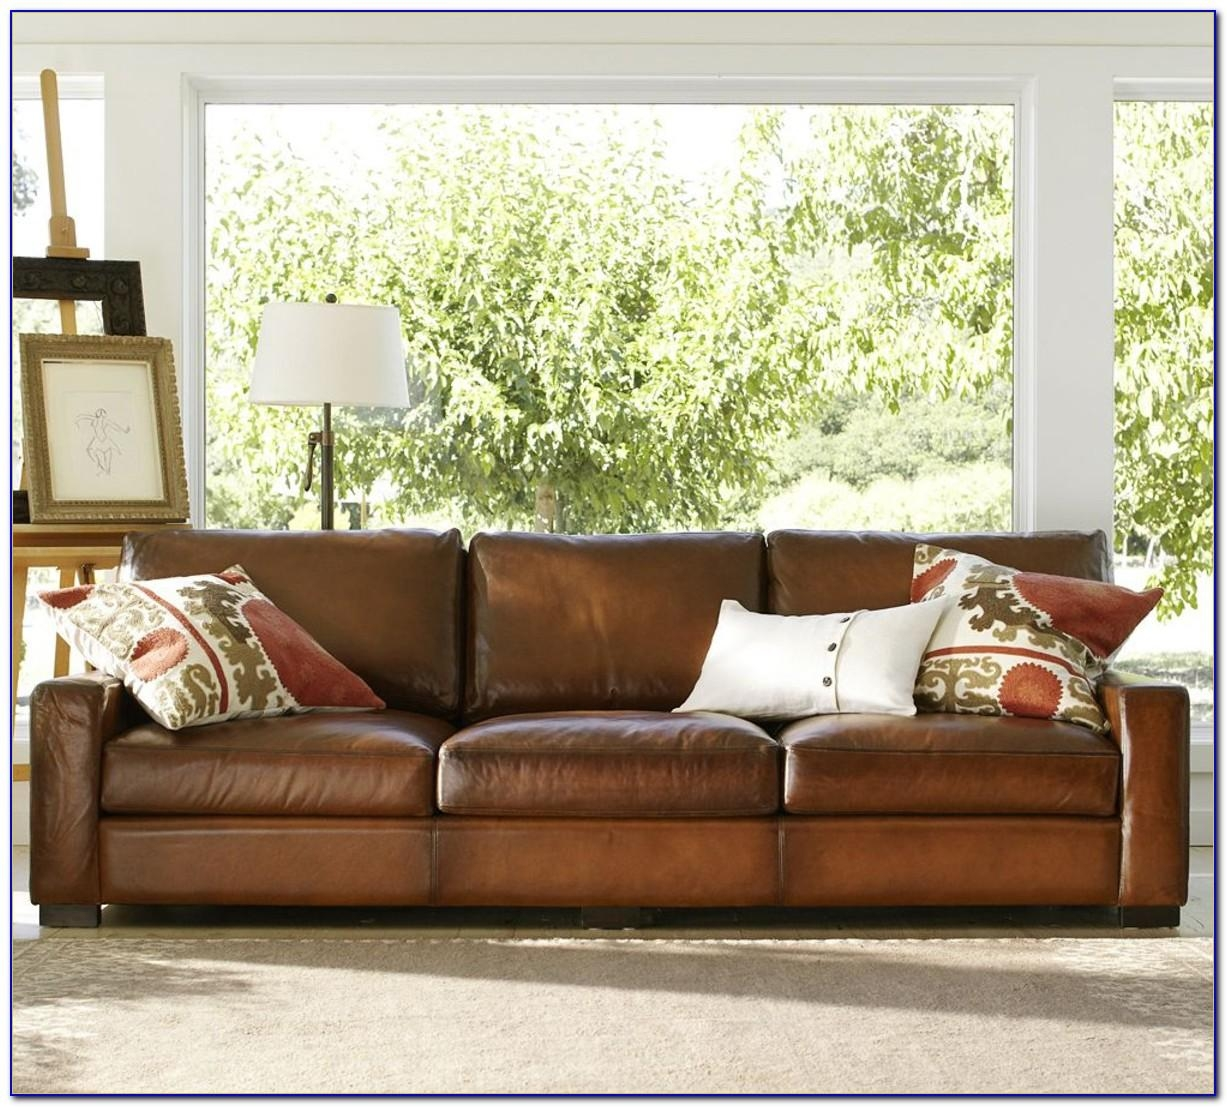 Sofas Center : Sofat Beds Design Charming Ancient Leather Sleeper Throughout Craigslist Leather Sofa (View 8 of 20)